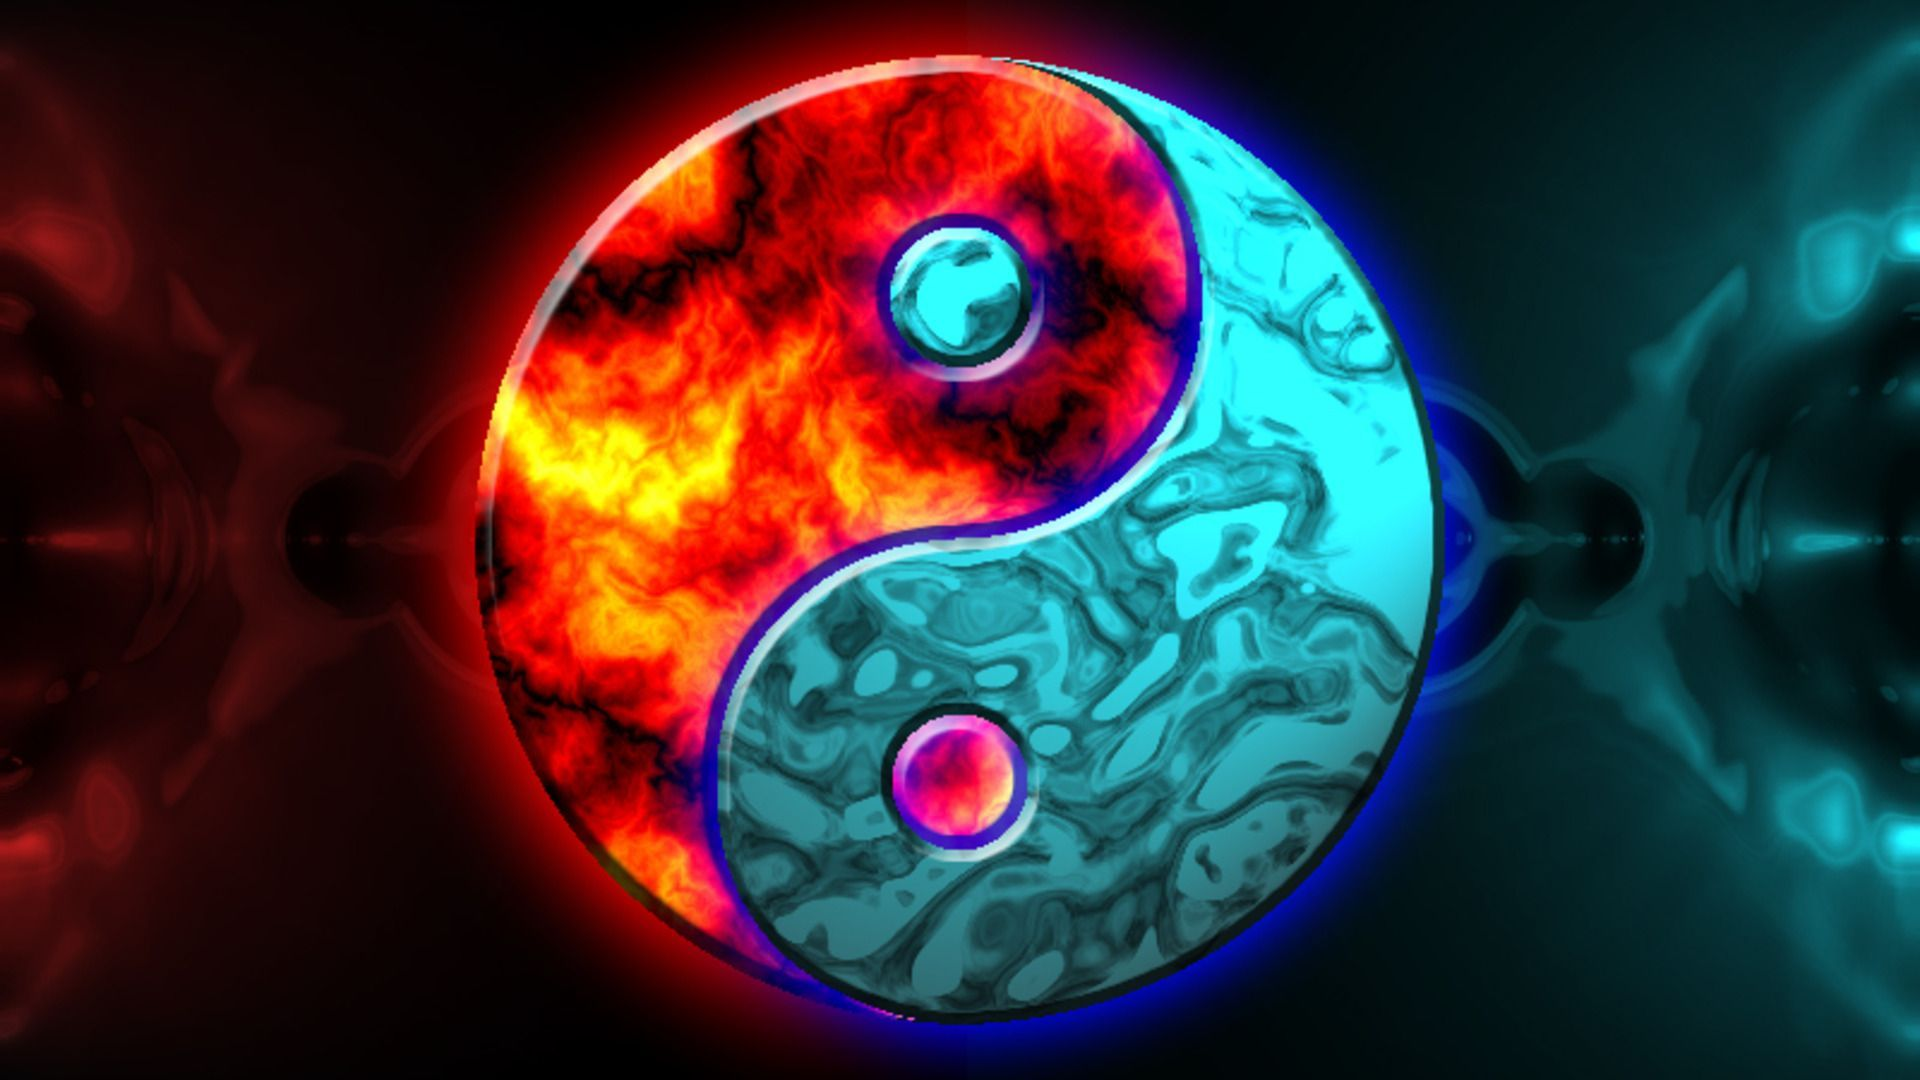 Yin Yang Wallpapers 421.09 Kb